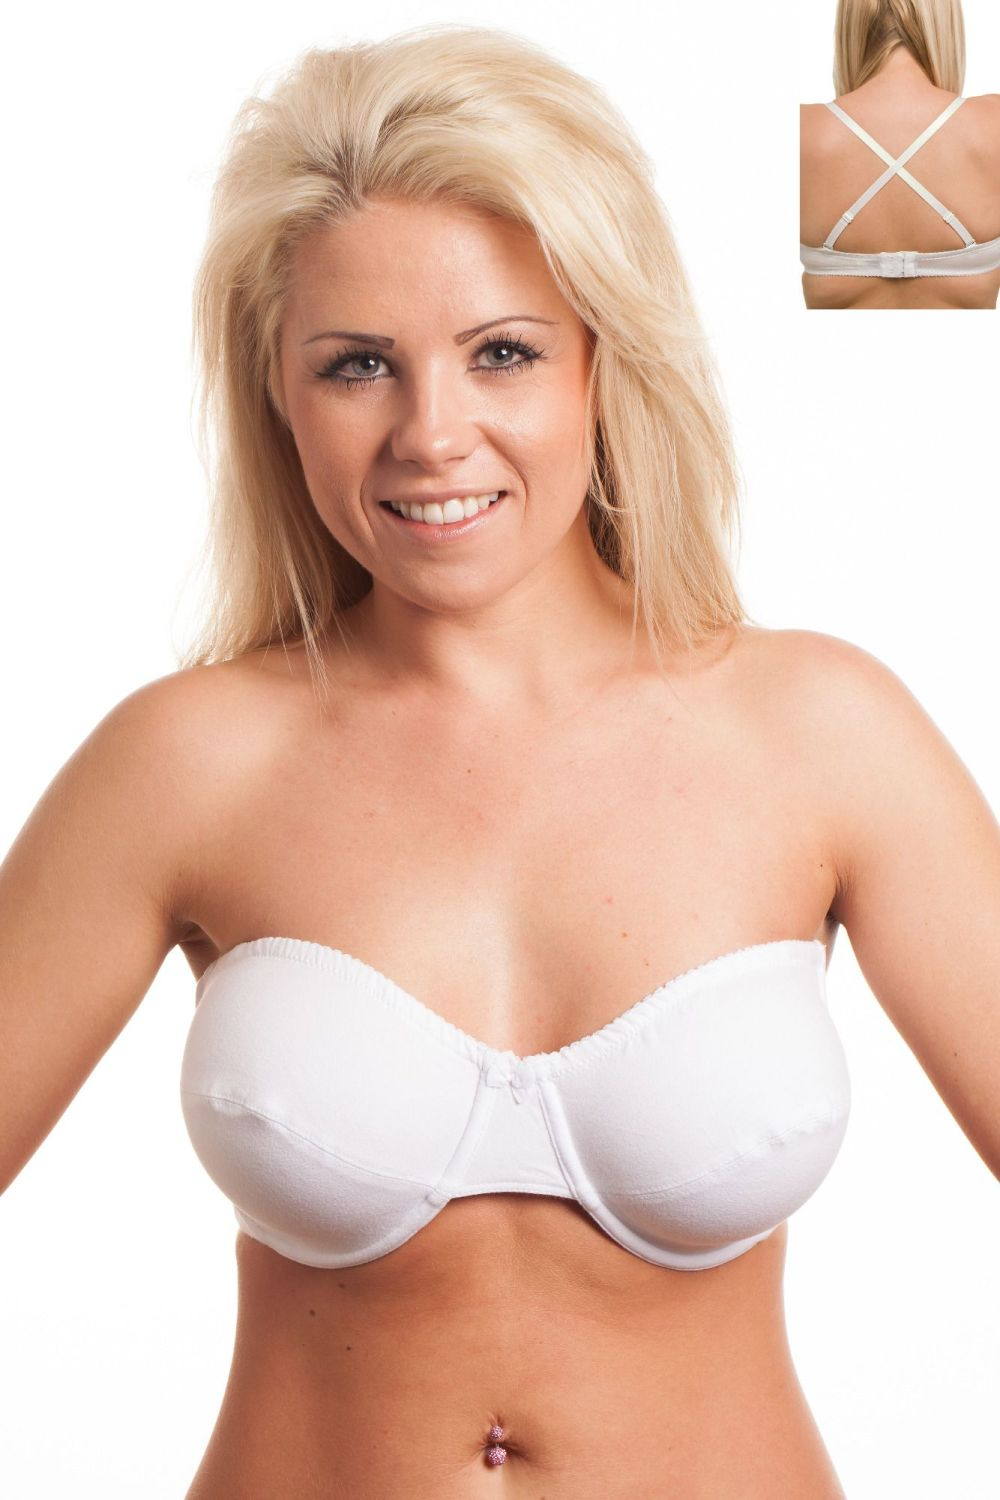 MW295 - 10 COTTON Strapless Bras - only £3.75 Each